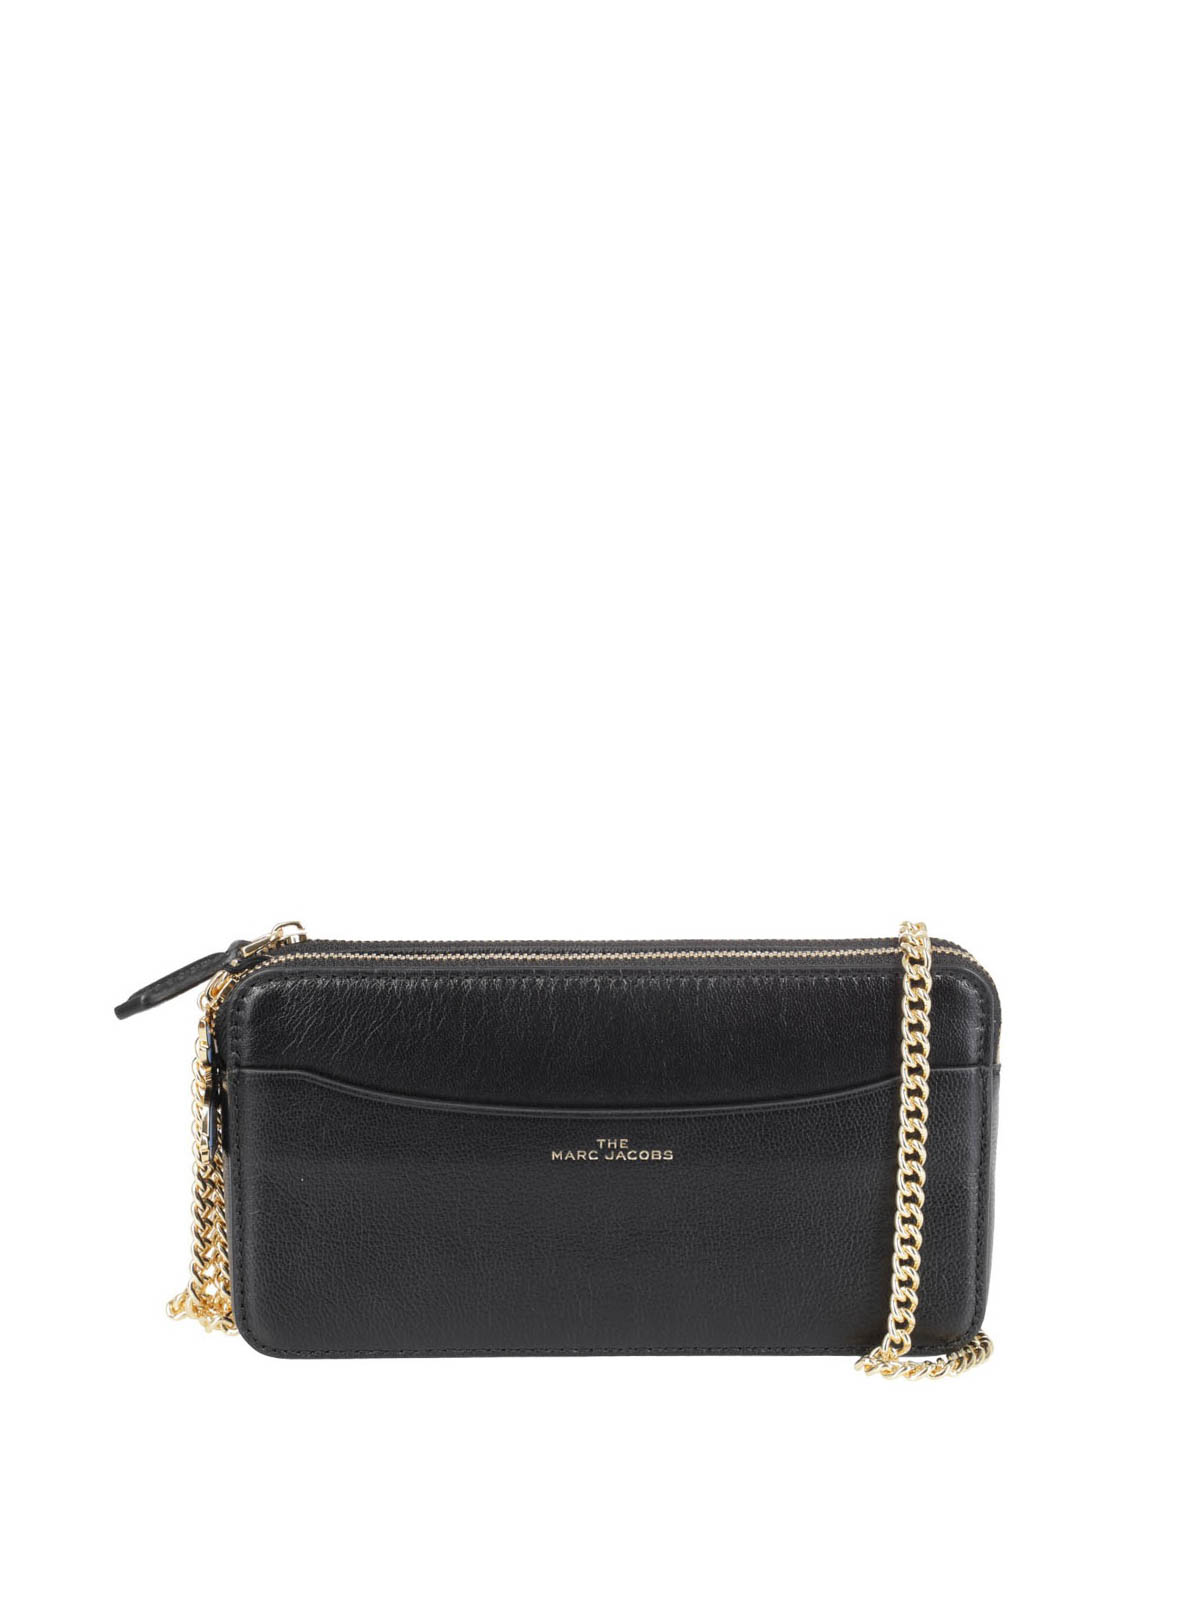 Marc Jacobs THE CHAIN CONTINENTAL BAG